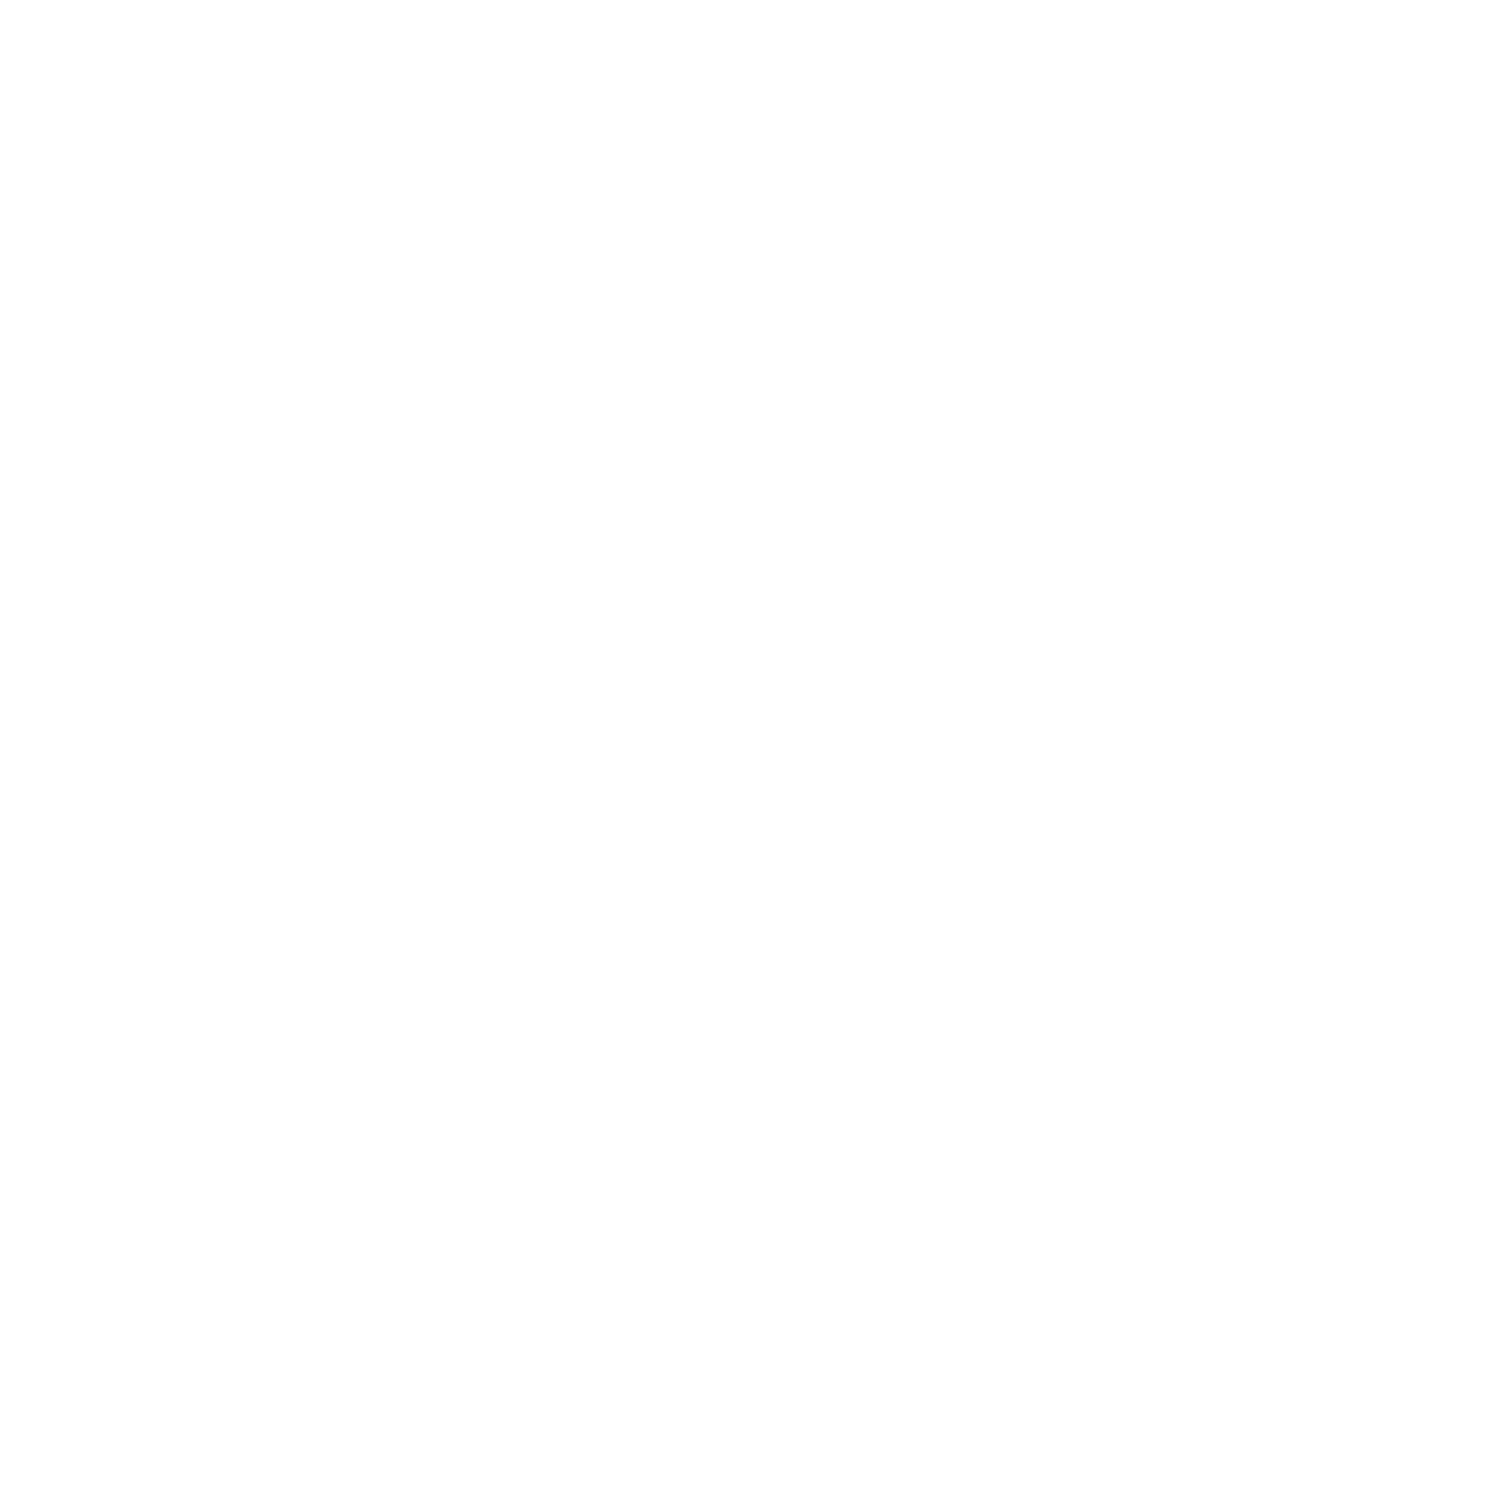 Leo Academy Vocal Arts